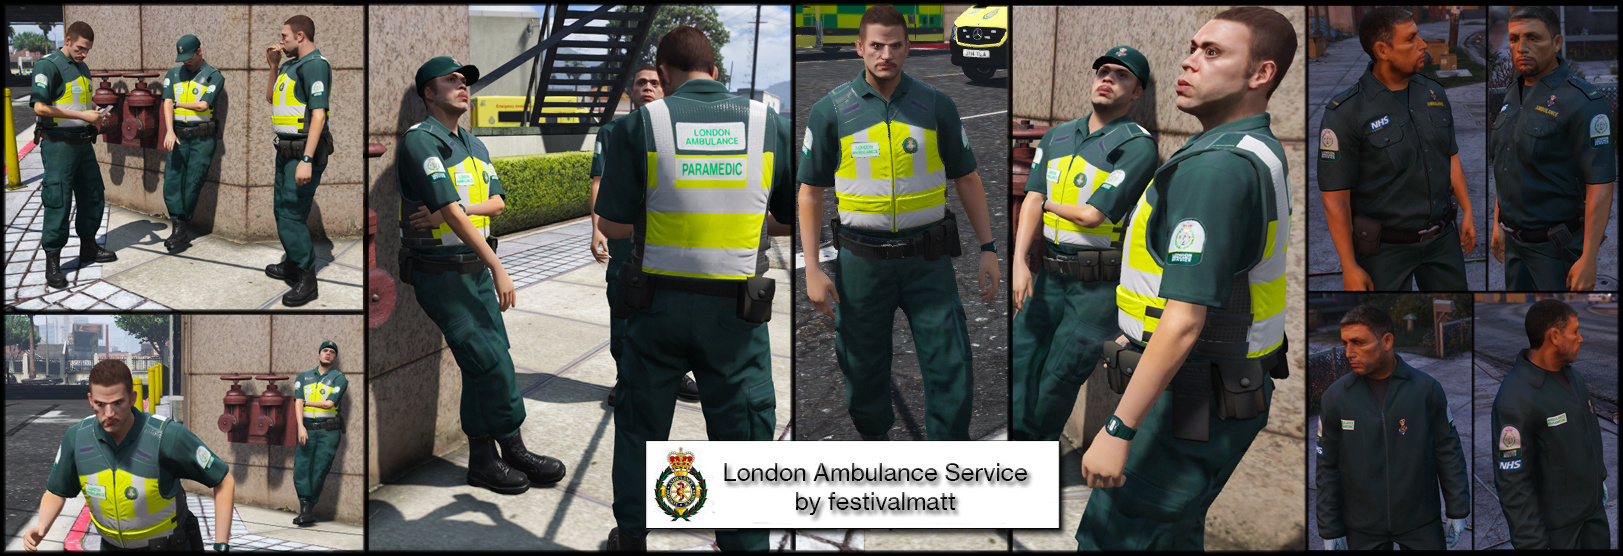 London paramedic uniform